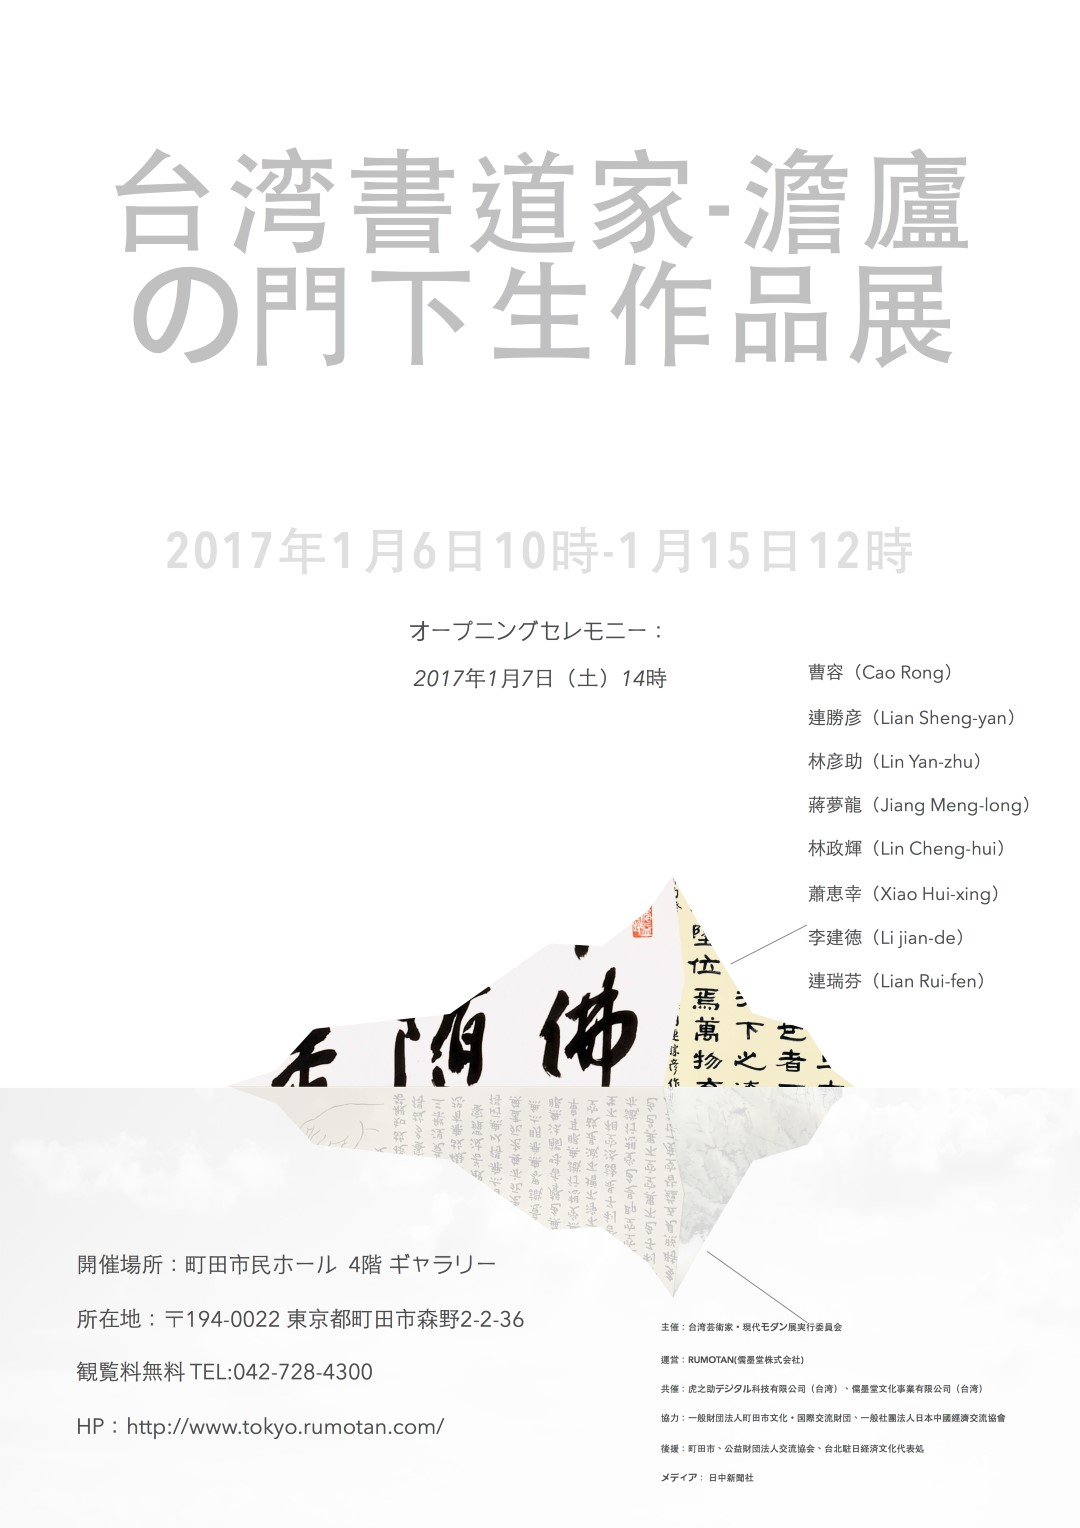 Taiwan calligrapher of the Tan Lu students Exhibition(台湾書道家-澹廬の門下生作品展)